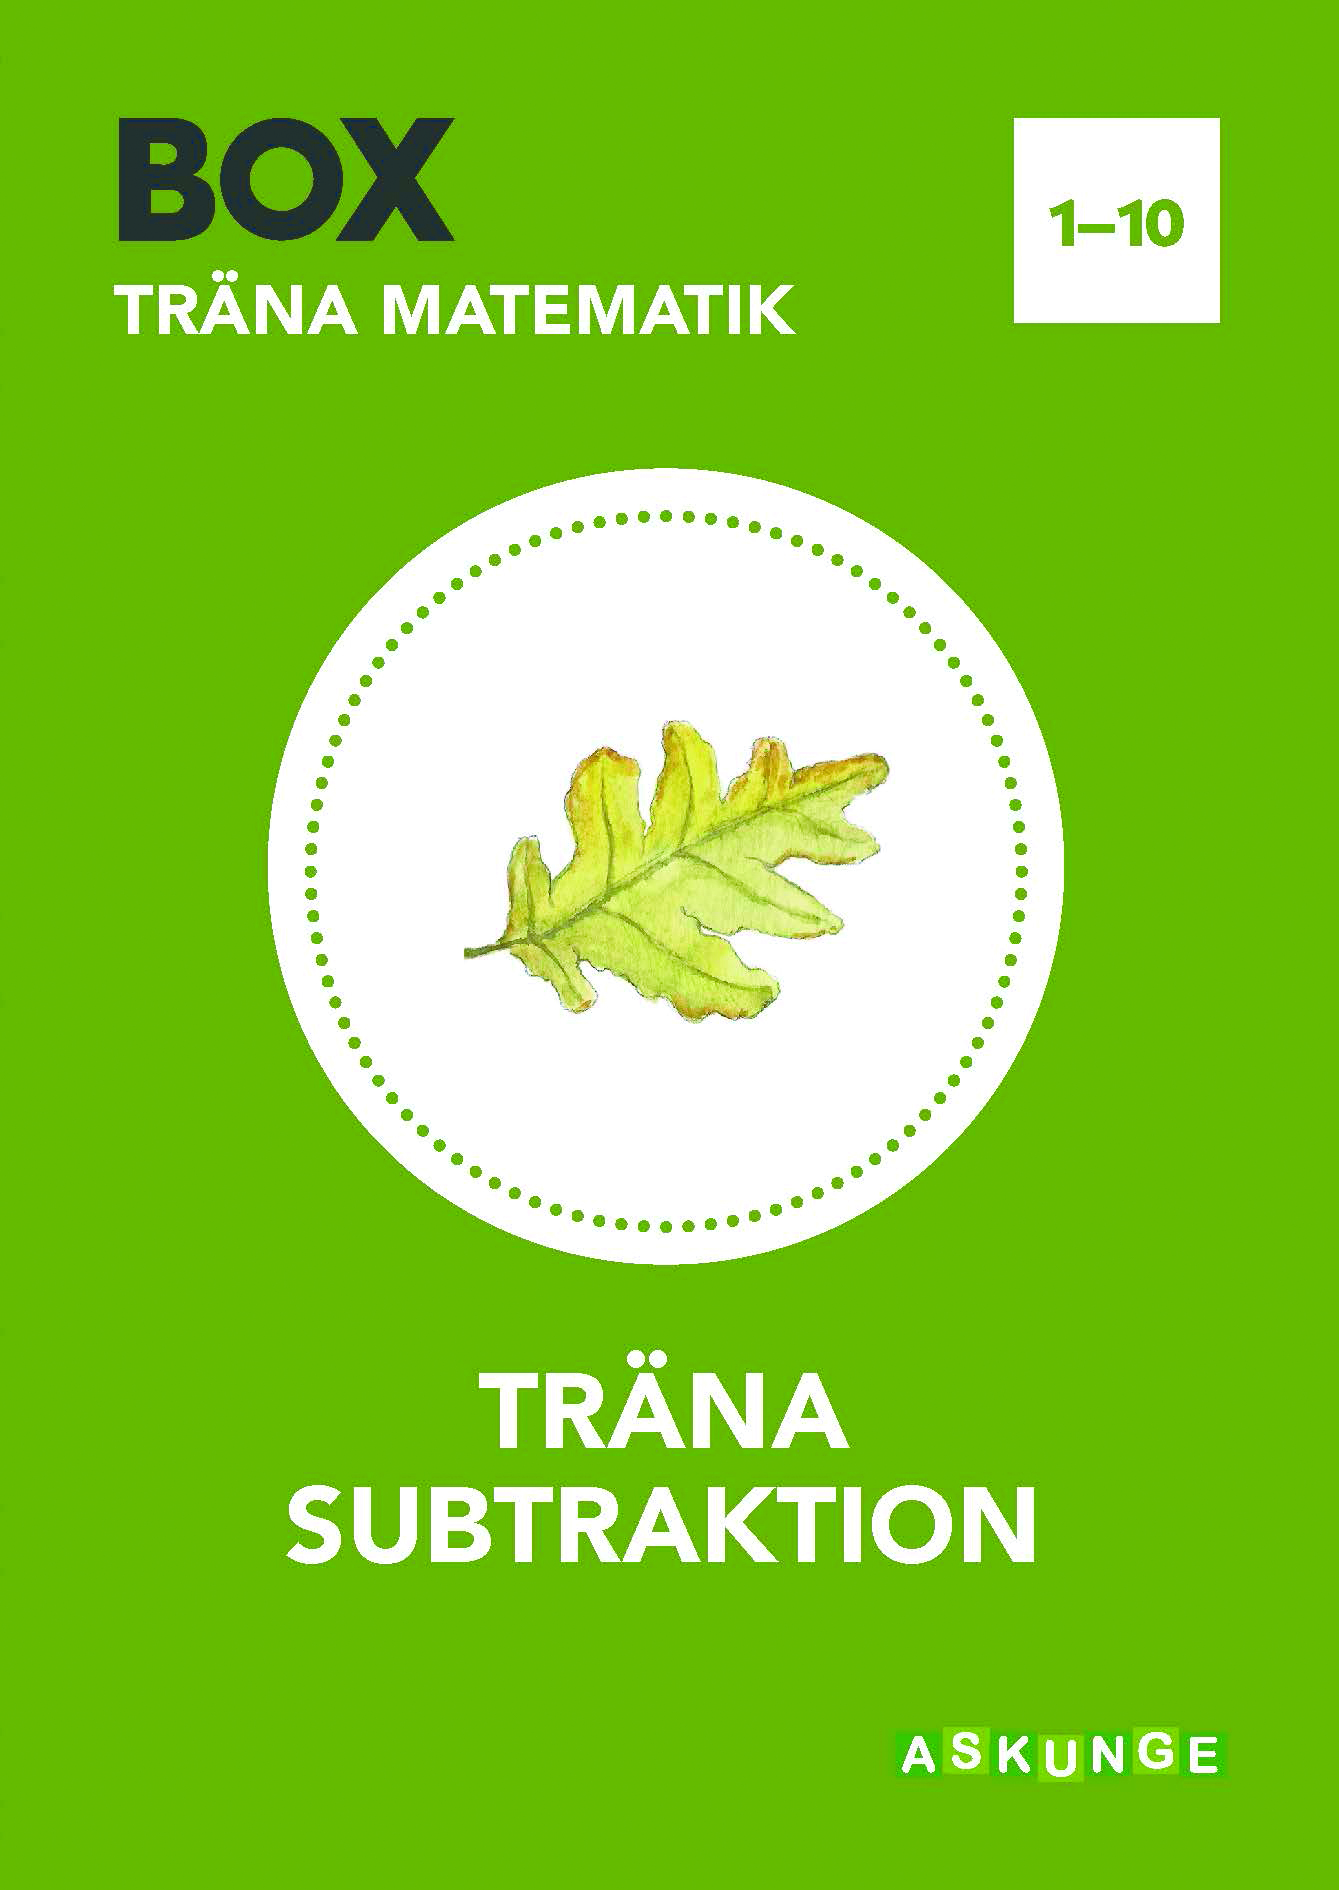 BOX Träna subtraktion 1-10